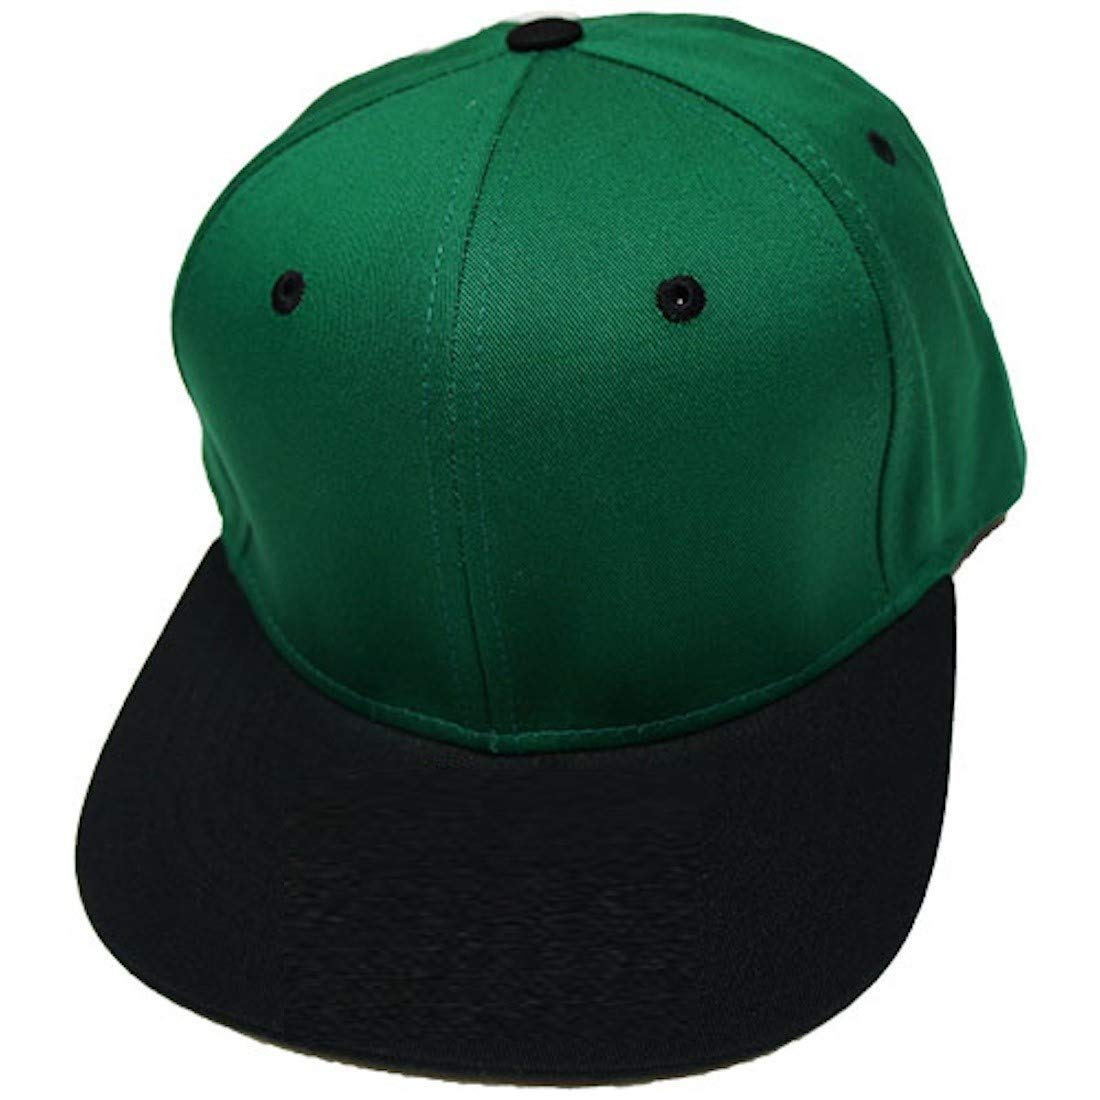 935ecfe0aaa Amazon.com  Altis Apparel Kid s Youth Flat Bill Snapback Hat - Hip Hop Baseball  Cap (Black Aqua)  Clothing